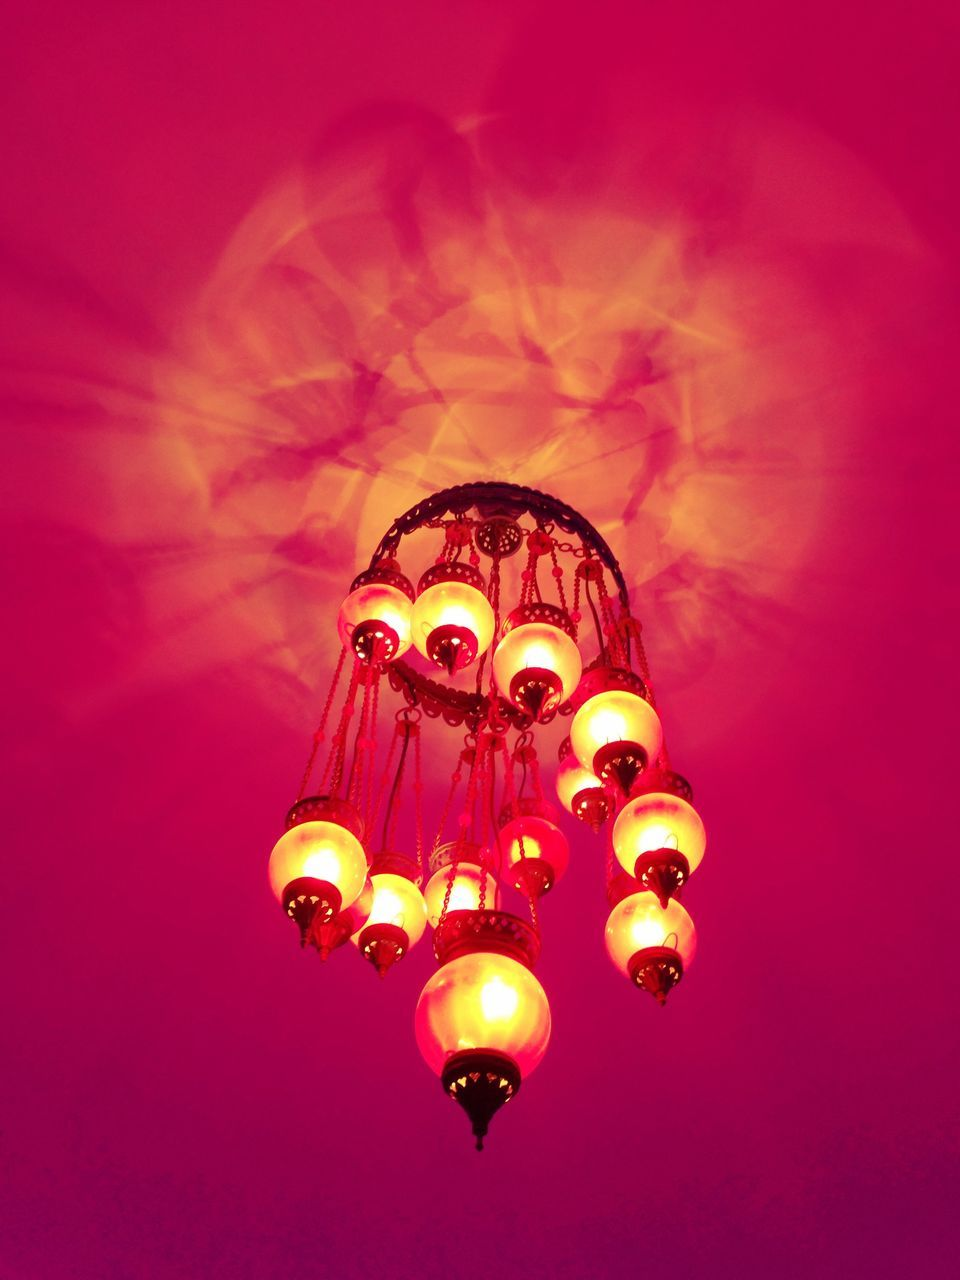 Low Angle View Of Illuminated Chandelier Hanging From Pink Ceiling